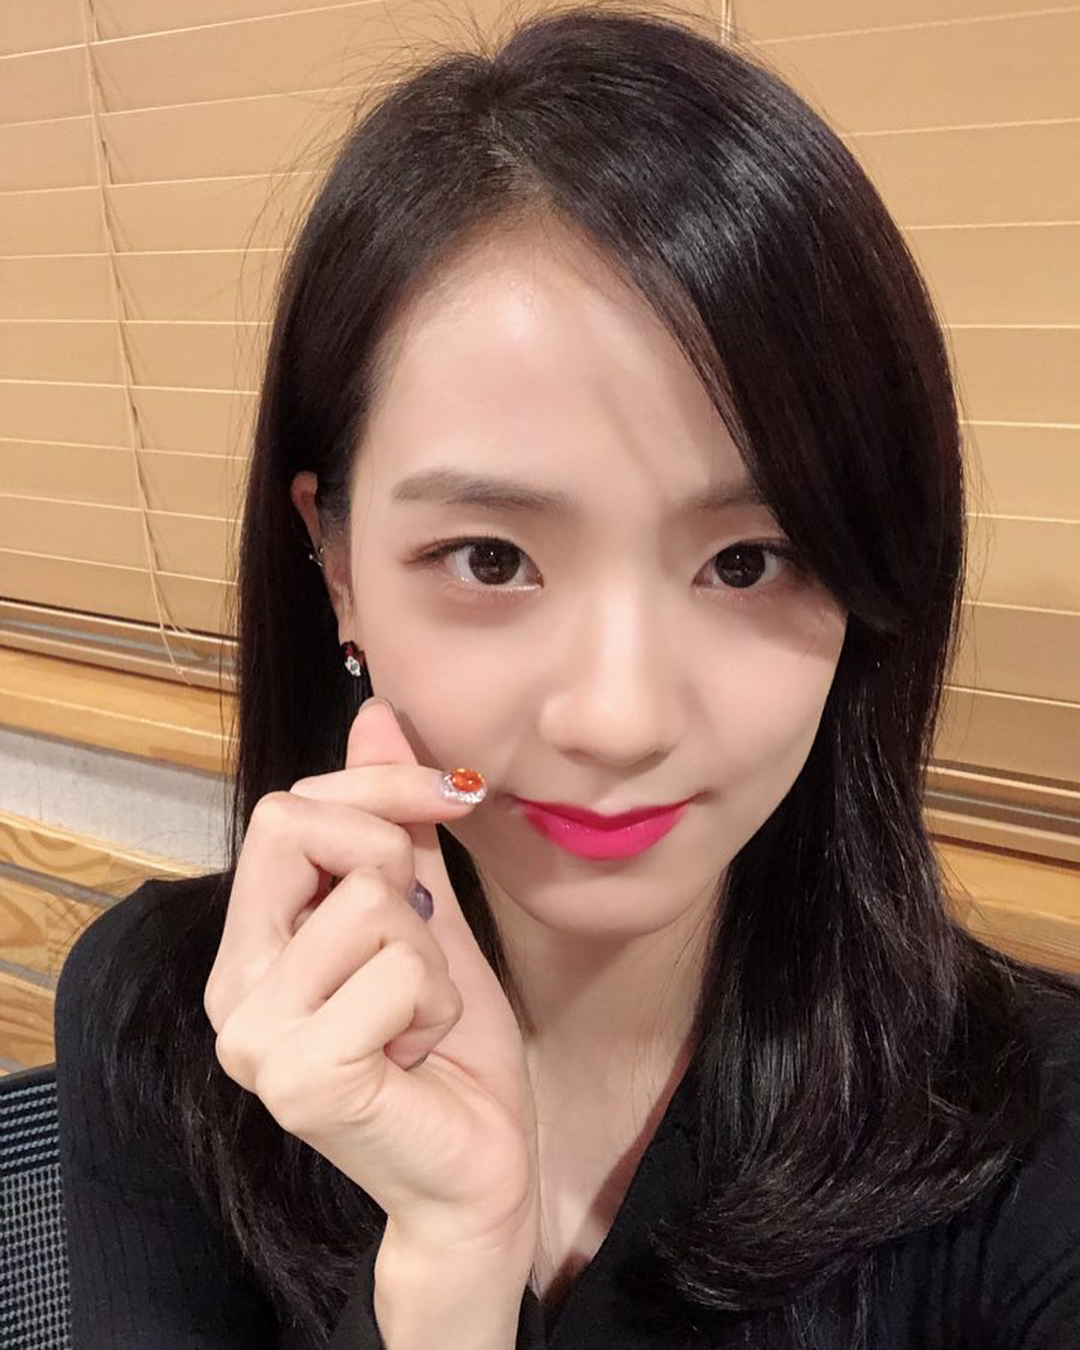 Jisoo has the best tips for the best selfies